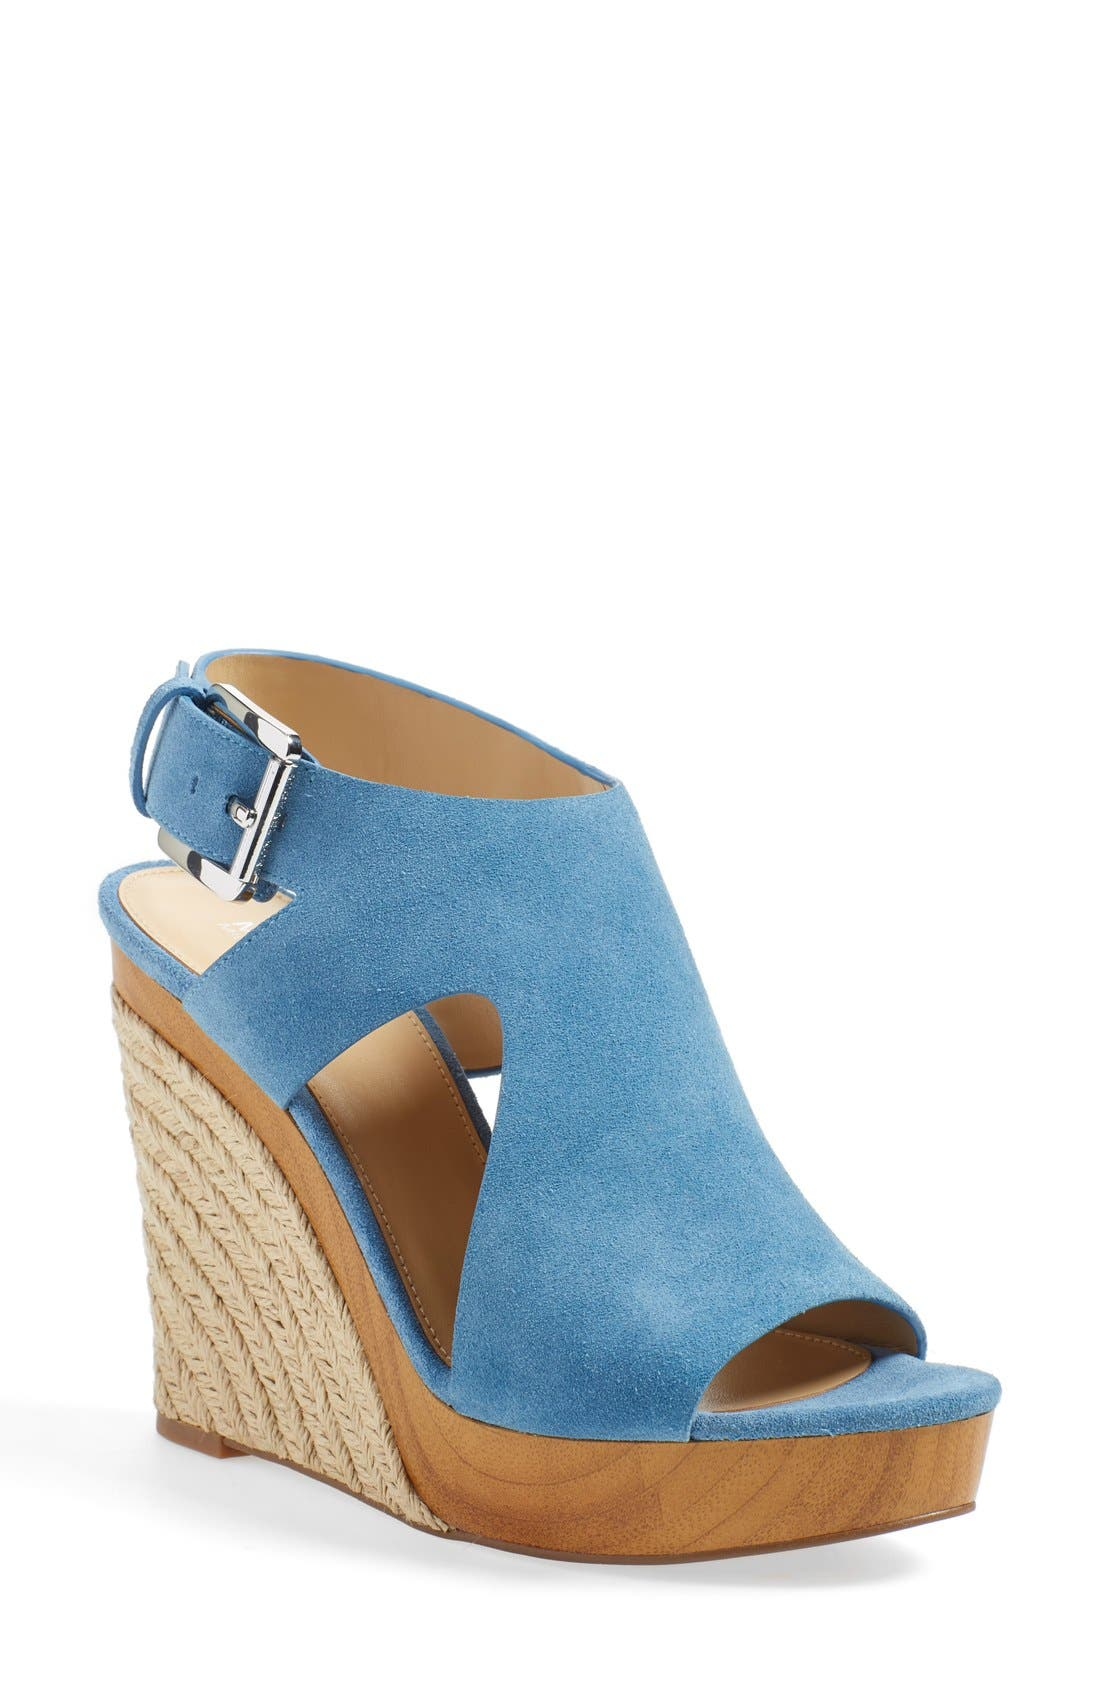 Main Image - MICHAEL Michael Kors 'Josephine' Wedge (Women)